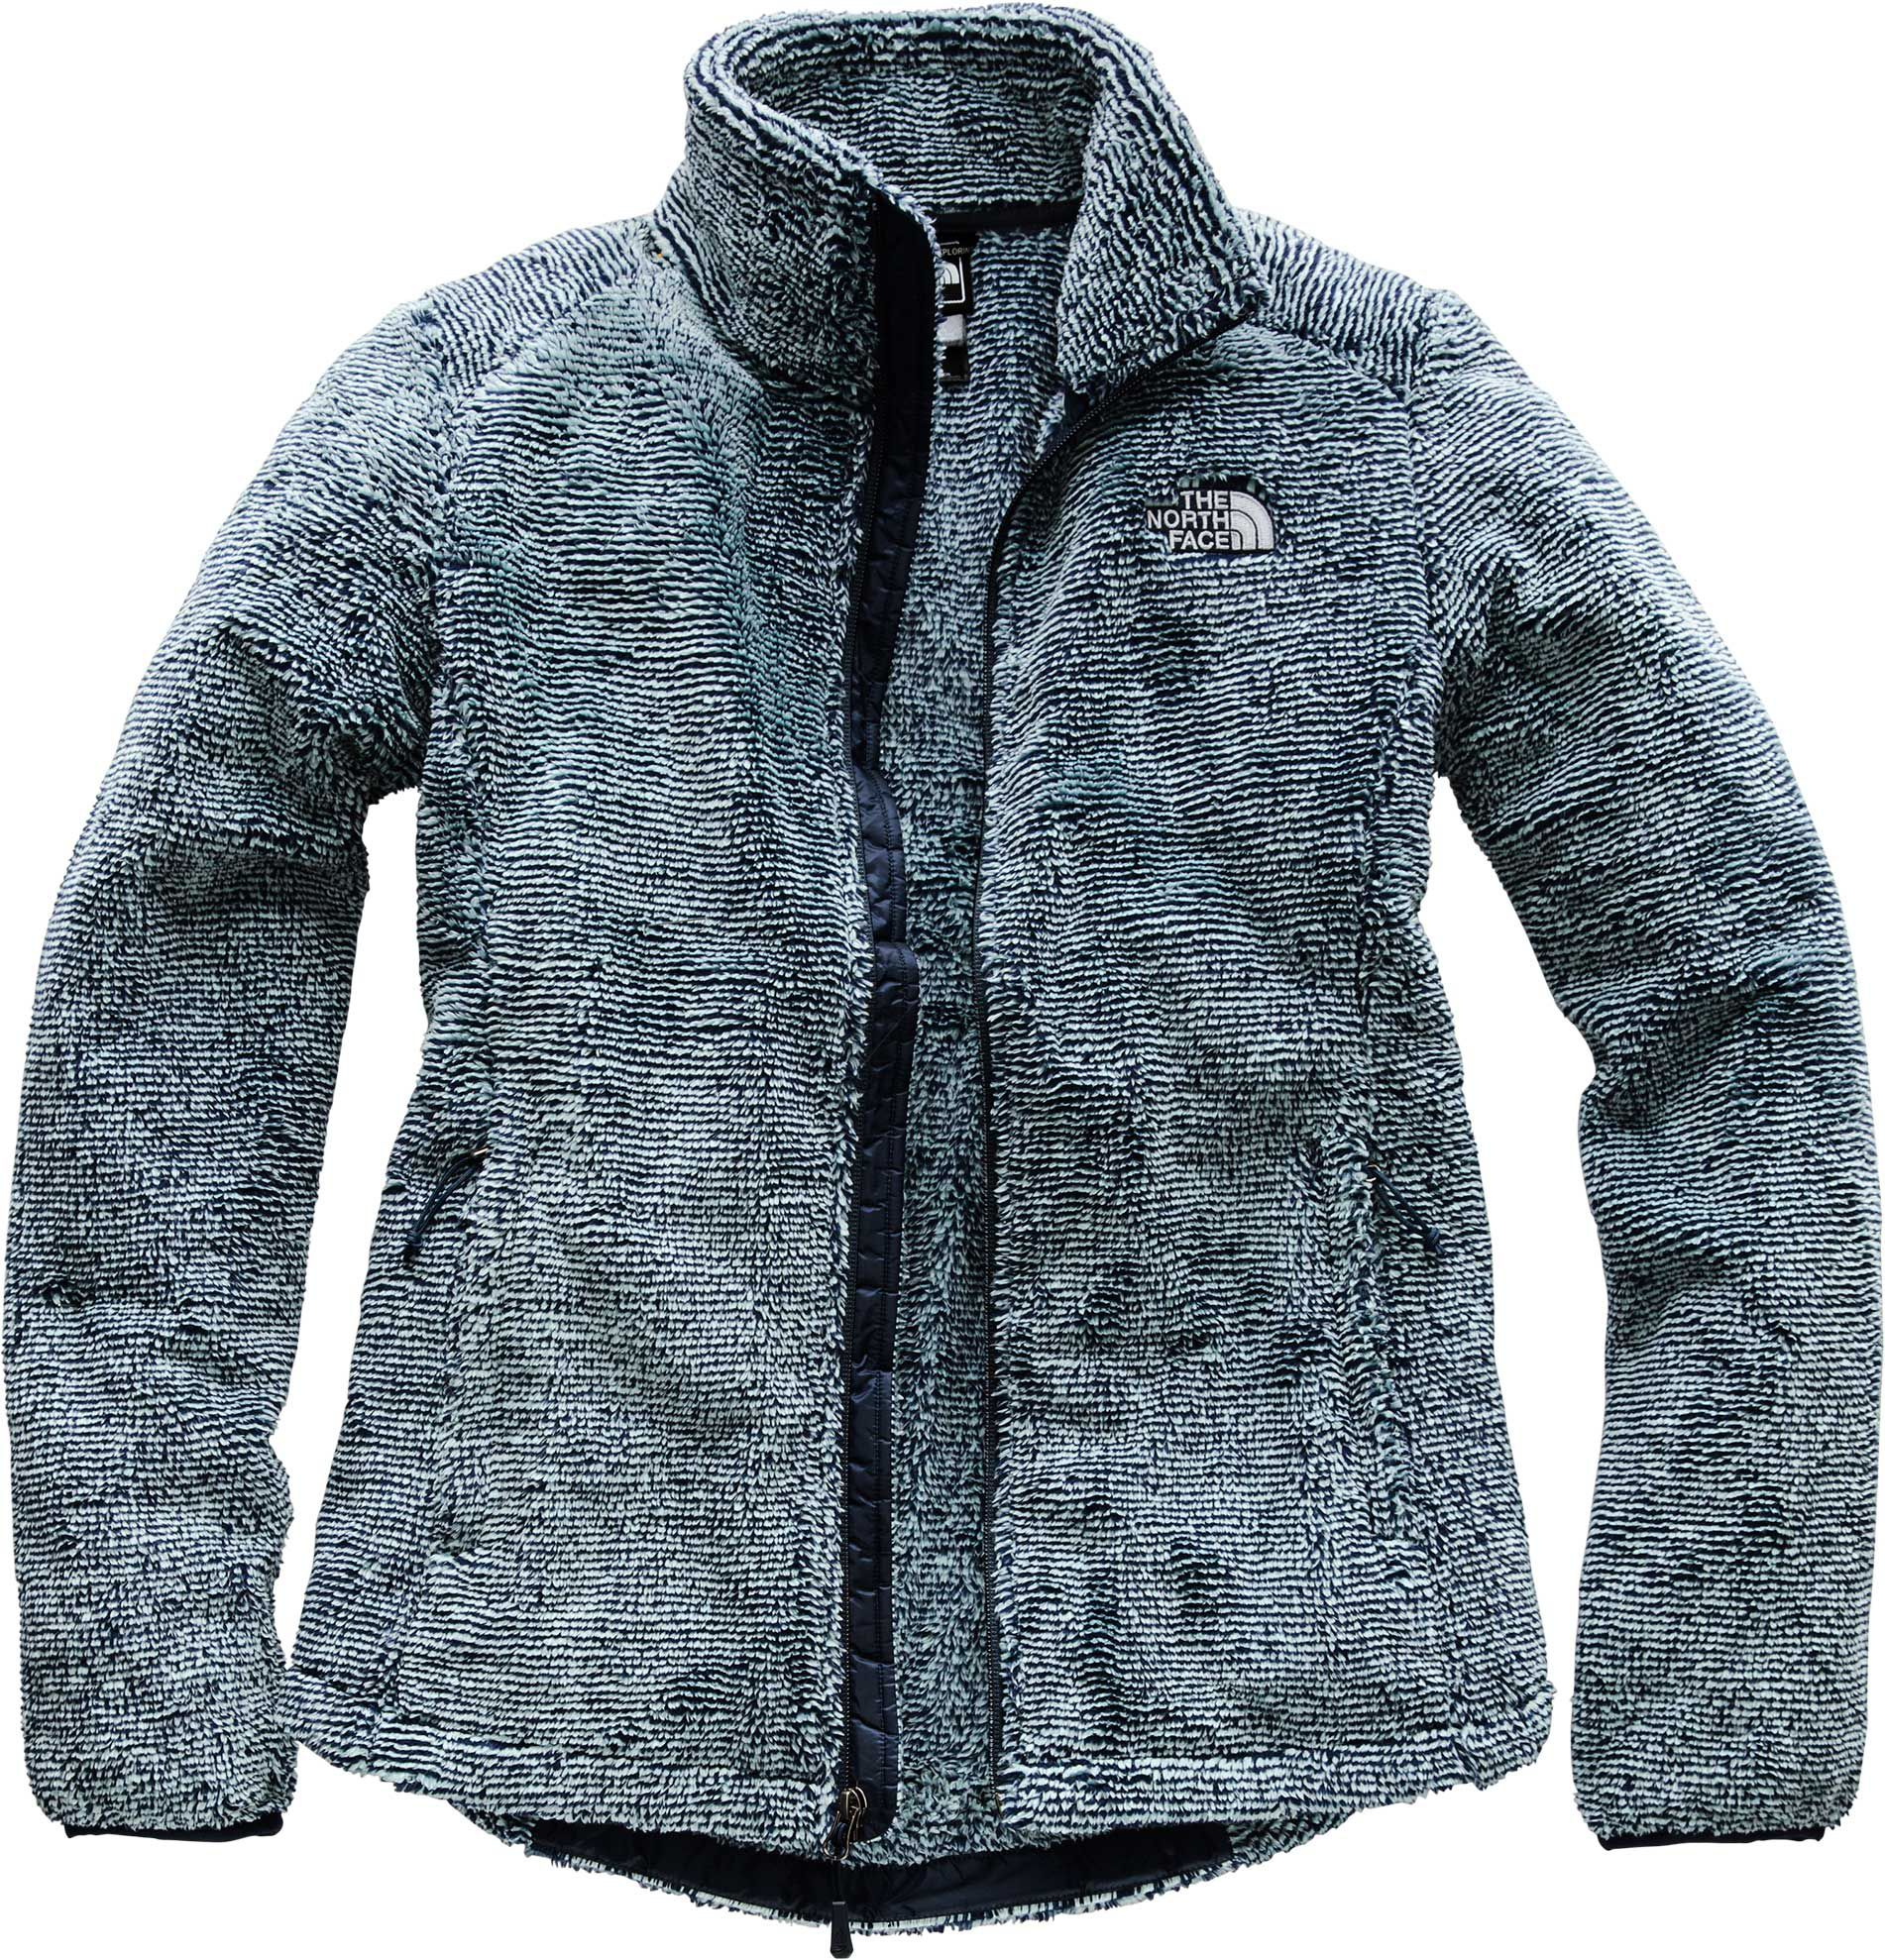 e4f773a2c The North Face Women's Osito 2 Fleece Jacket | Products | North face ...